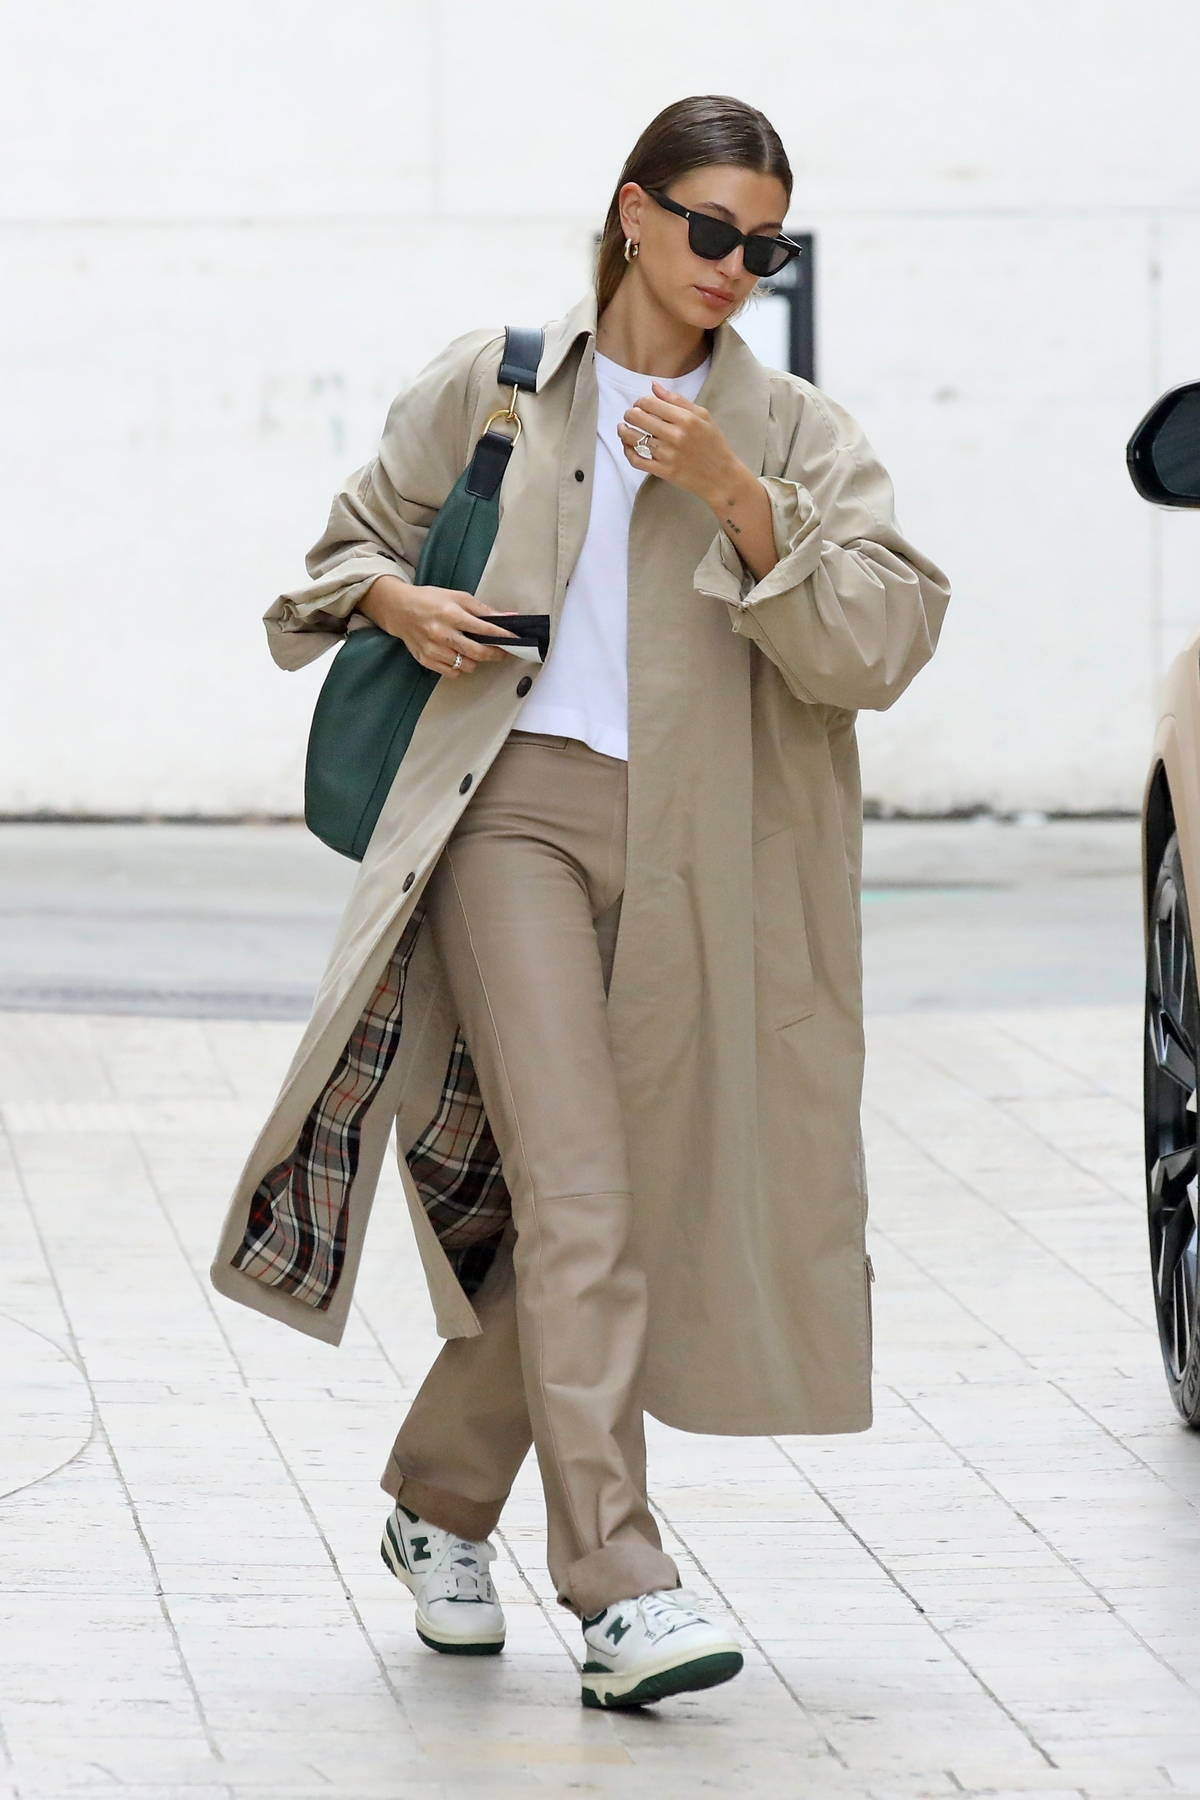 Hailey Bieber looks chic in a Burberry trench coat as she heads to a meeting in Los Angeles